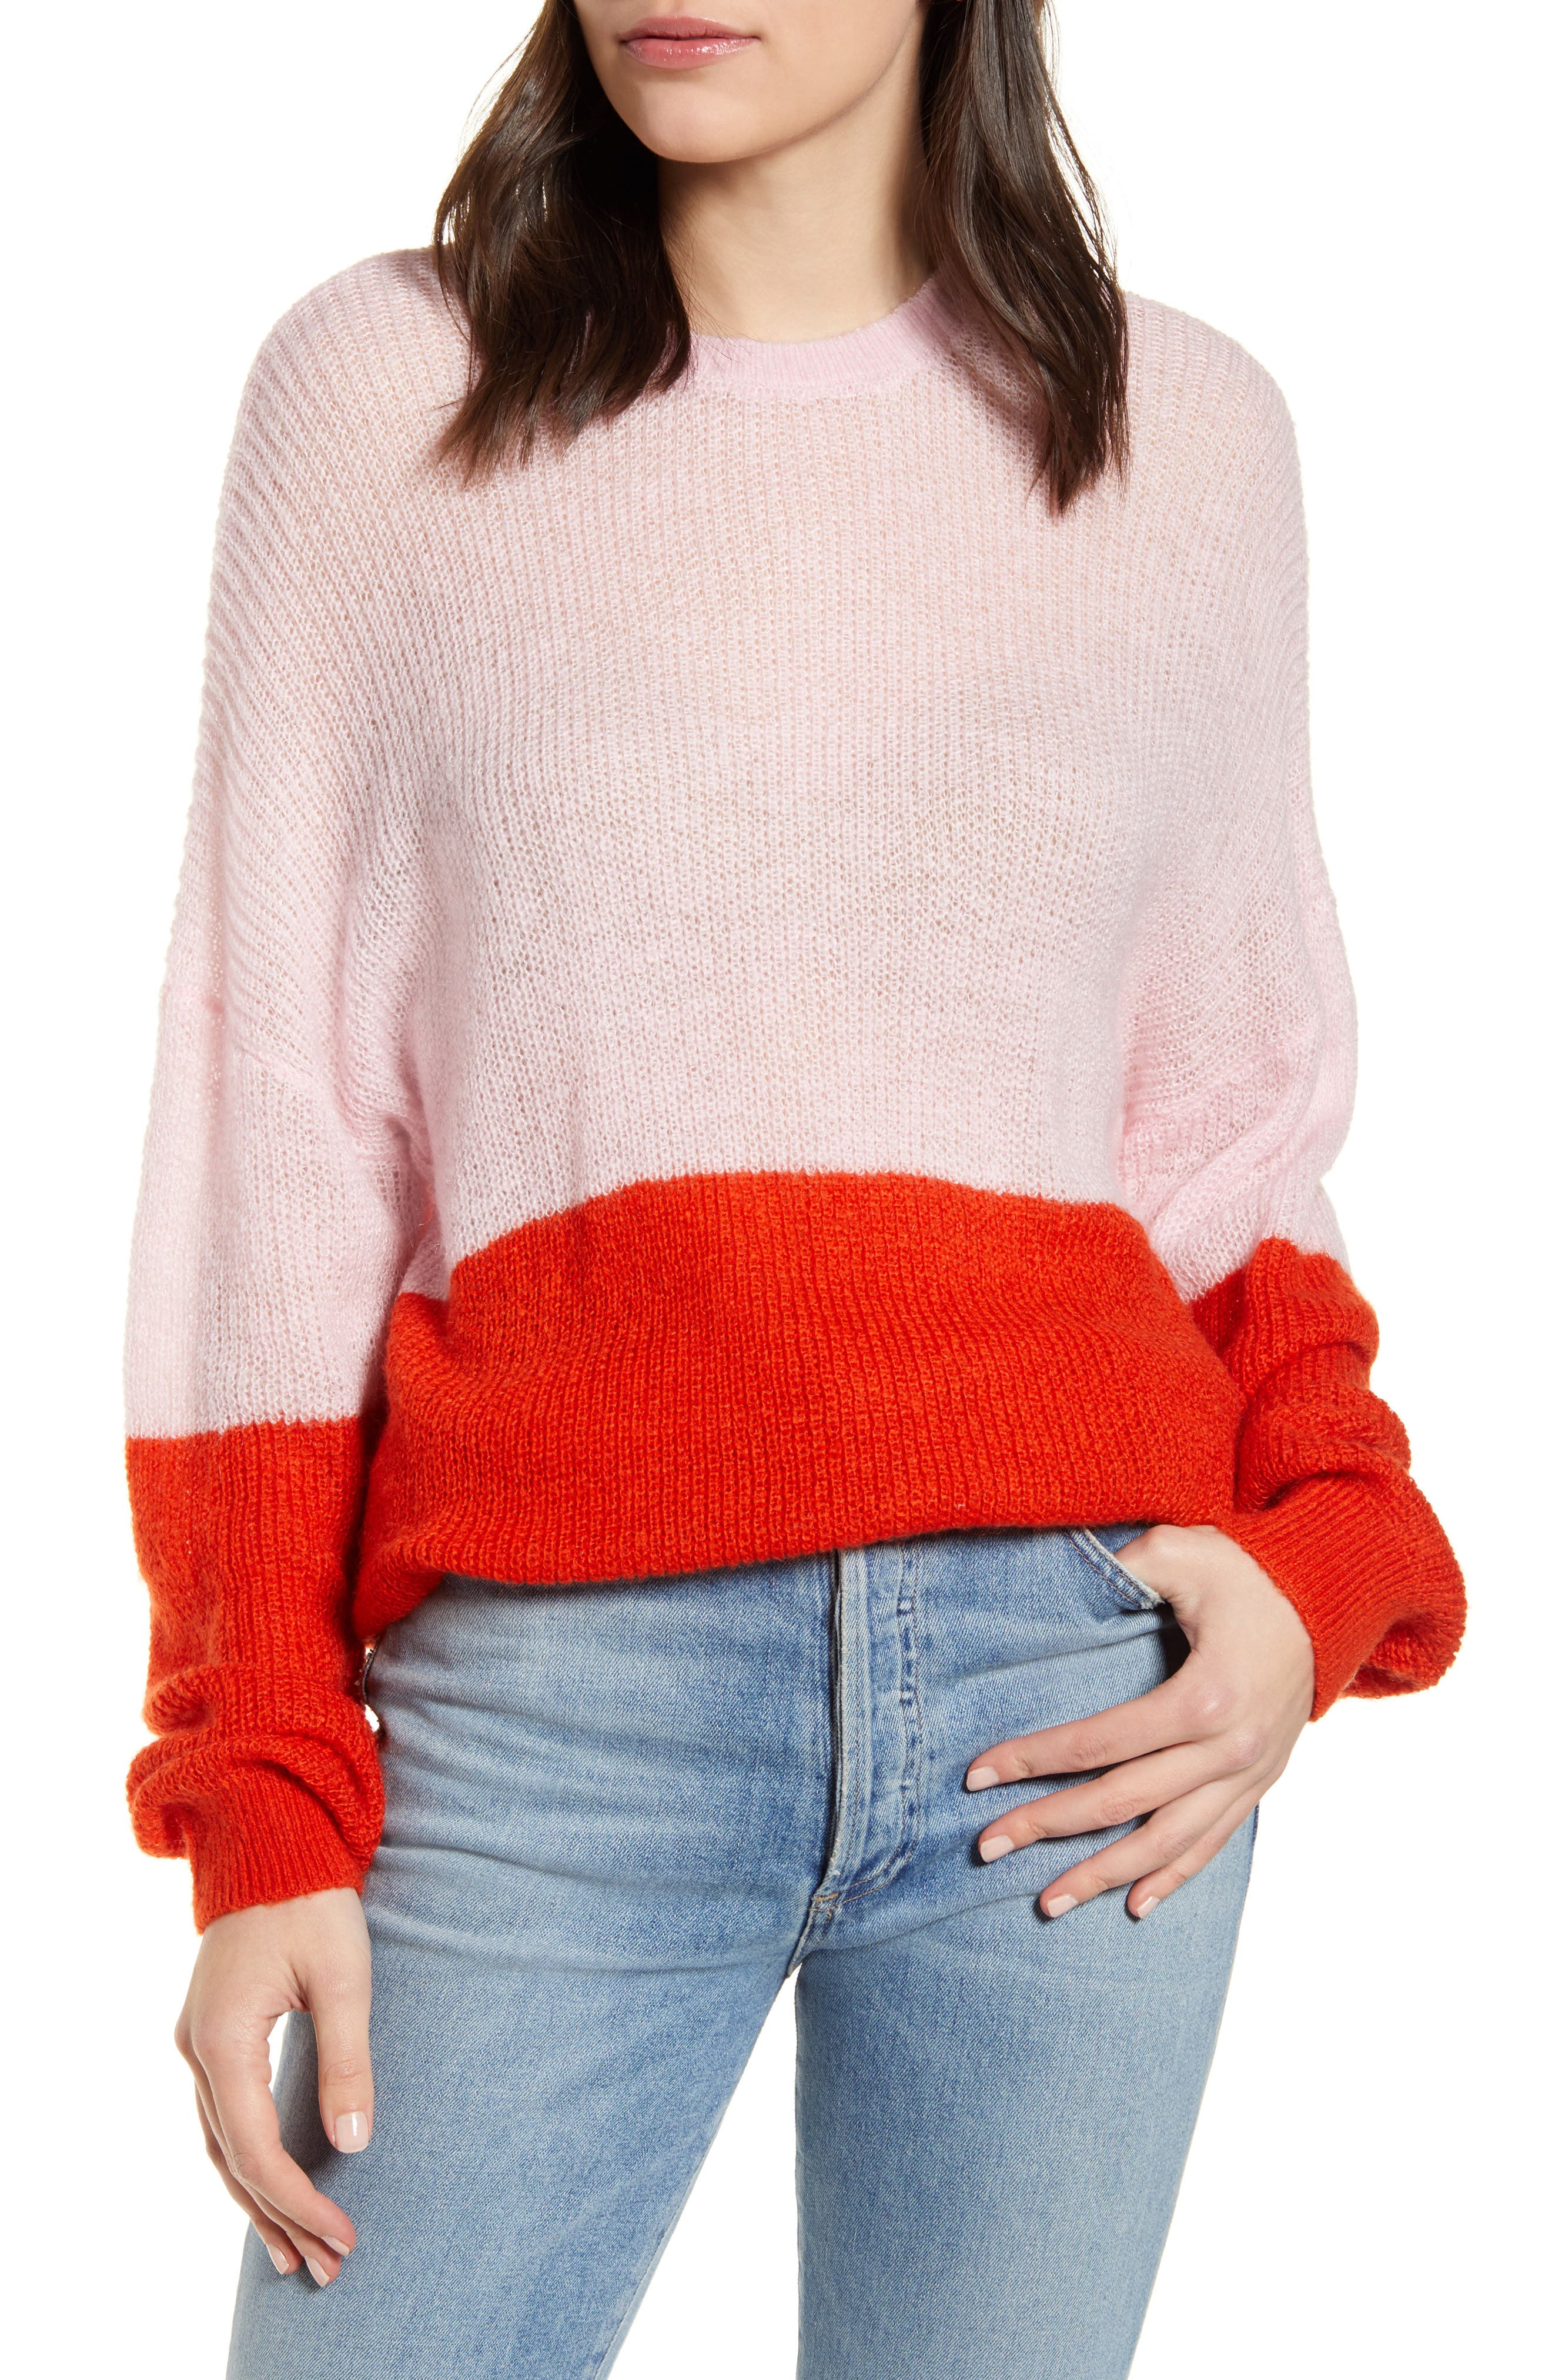 Image of: Cupcakes And Cashmere Janus Two Tone Sweater Nordstrom Rack